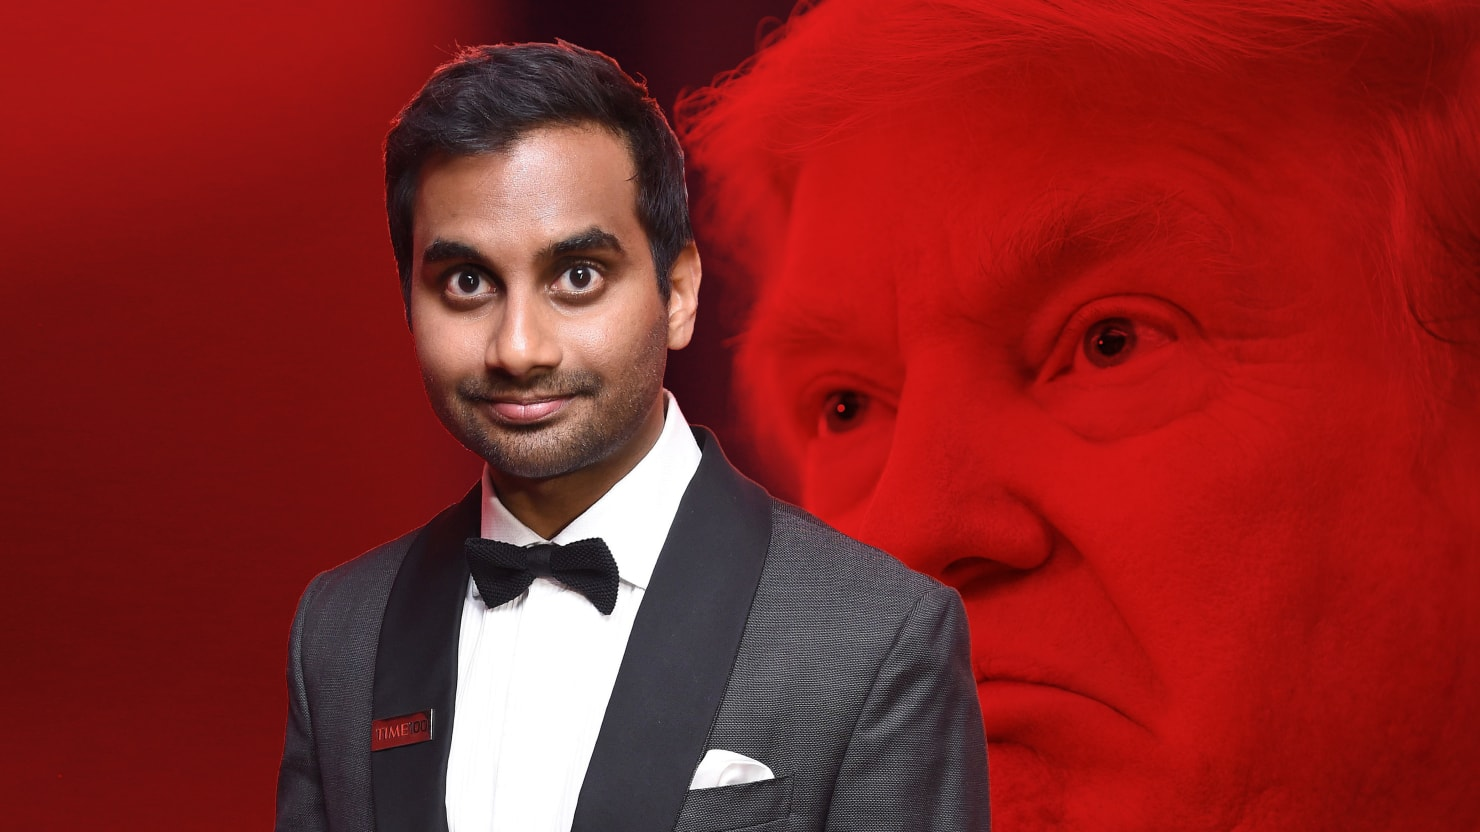 Aziz ansari pens scathing op ed denouncing trumps anti muslim hate photo illustration by brigette supernovathe daily beast aziz ansari stopboris Choice Image